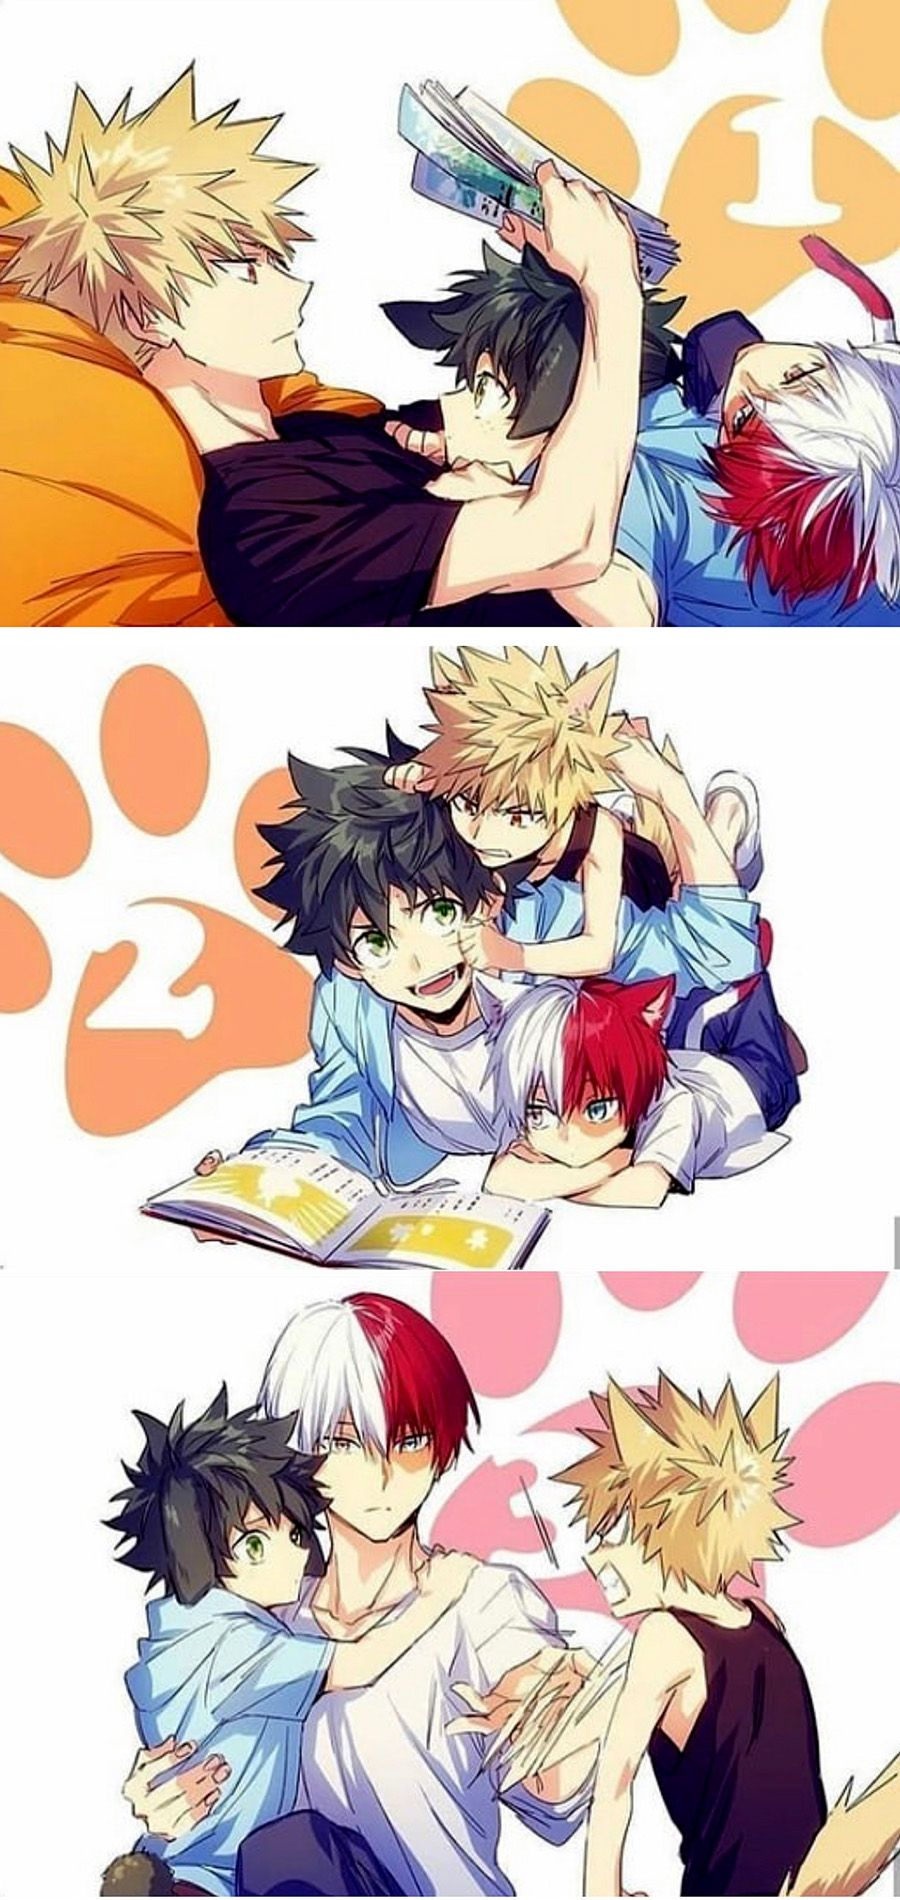 Pin By Maqueneze Hernandez On Todobakudeku With Images My Hero